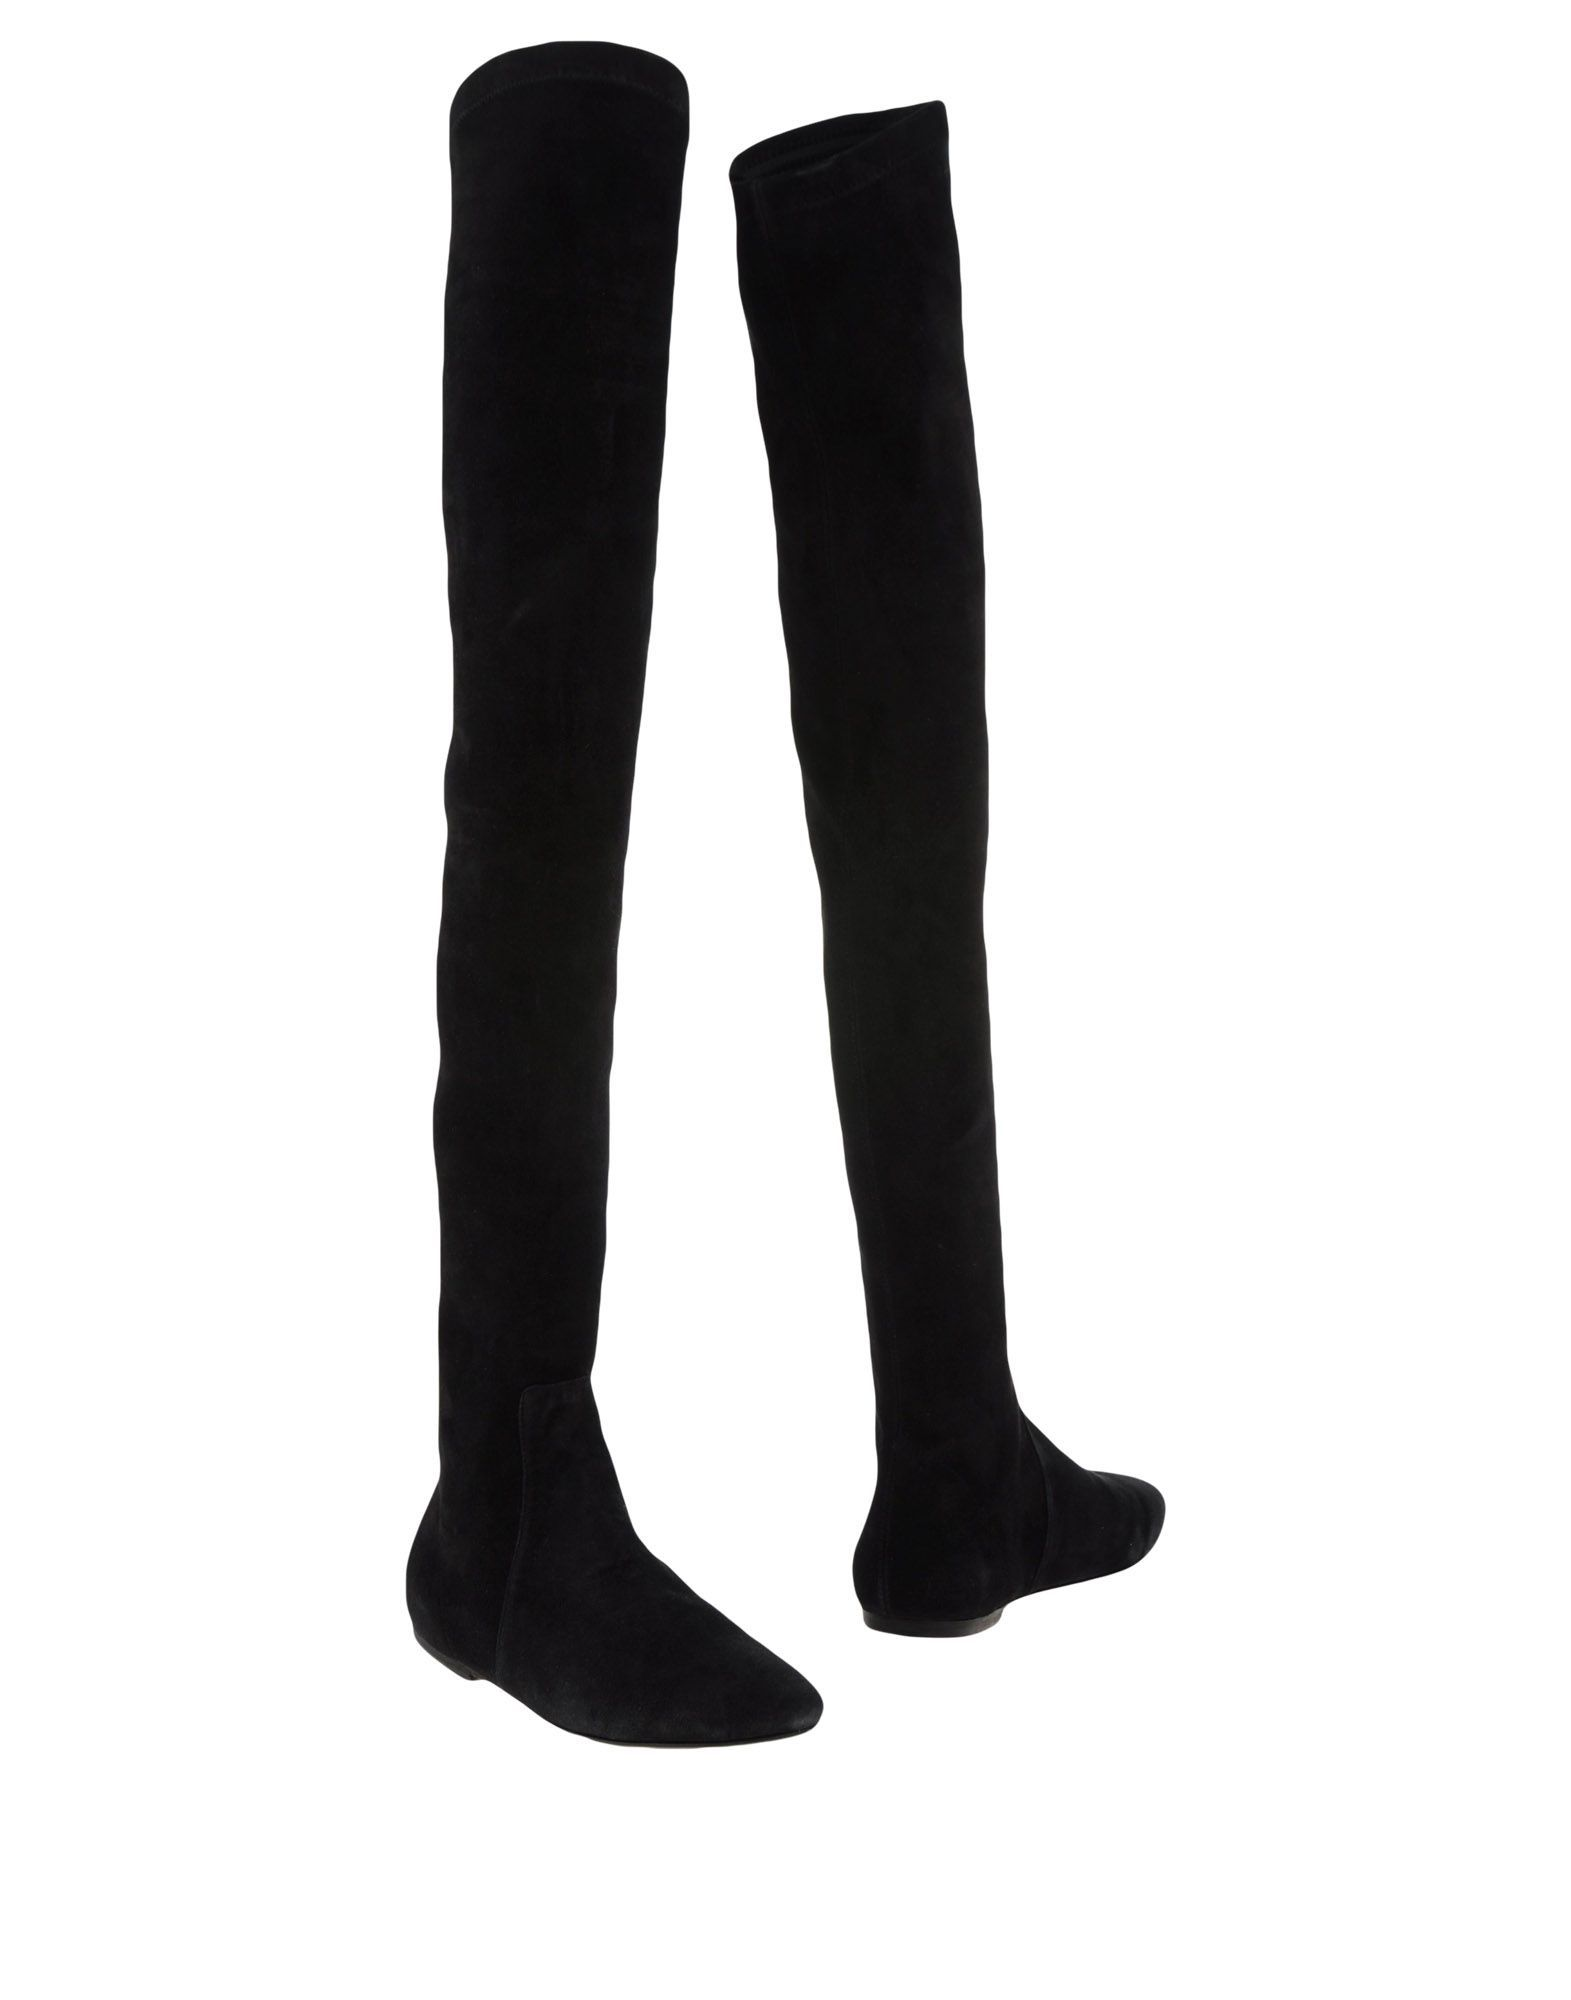 Isabel Marant Etoile Black Leather Over The Knee Boots